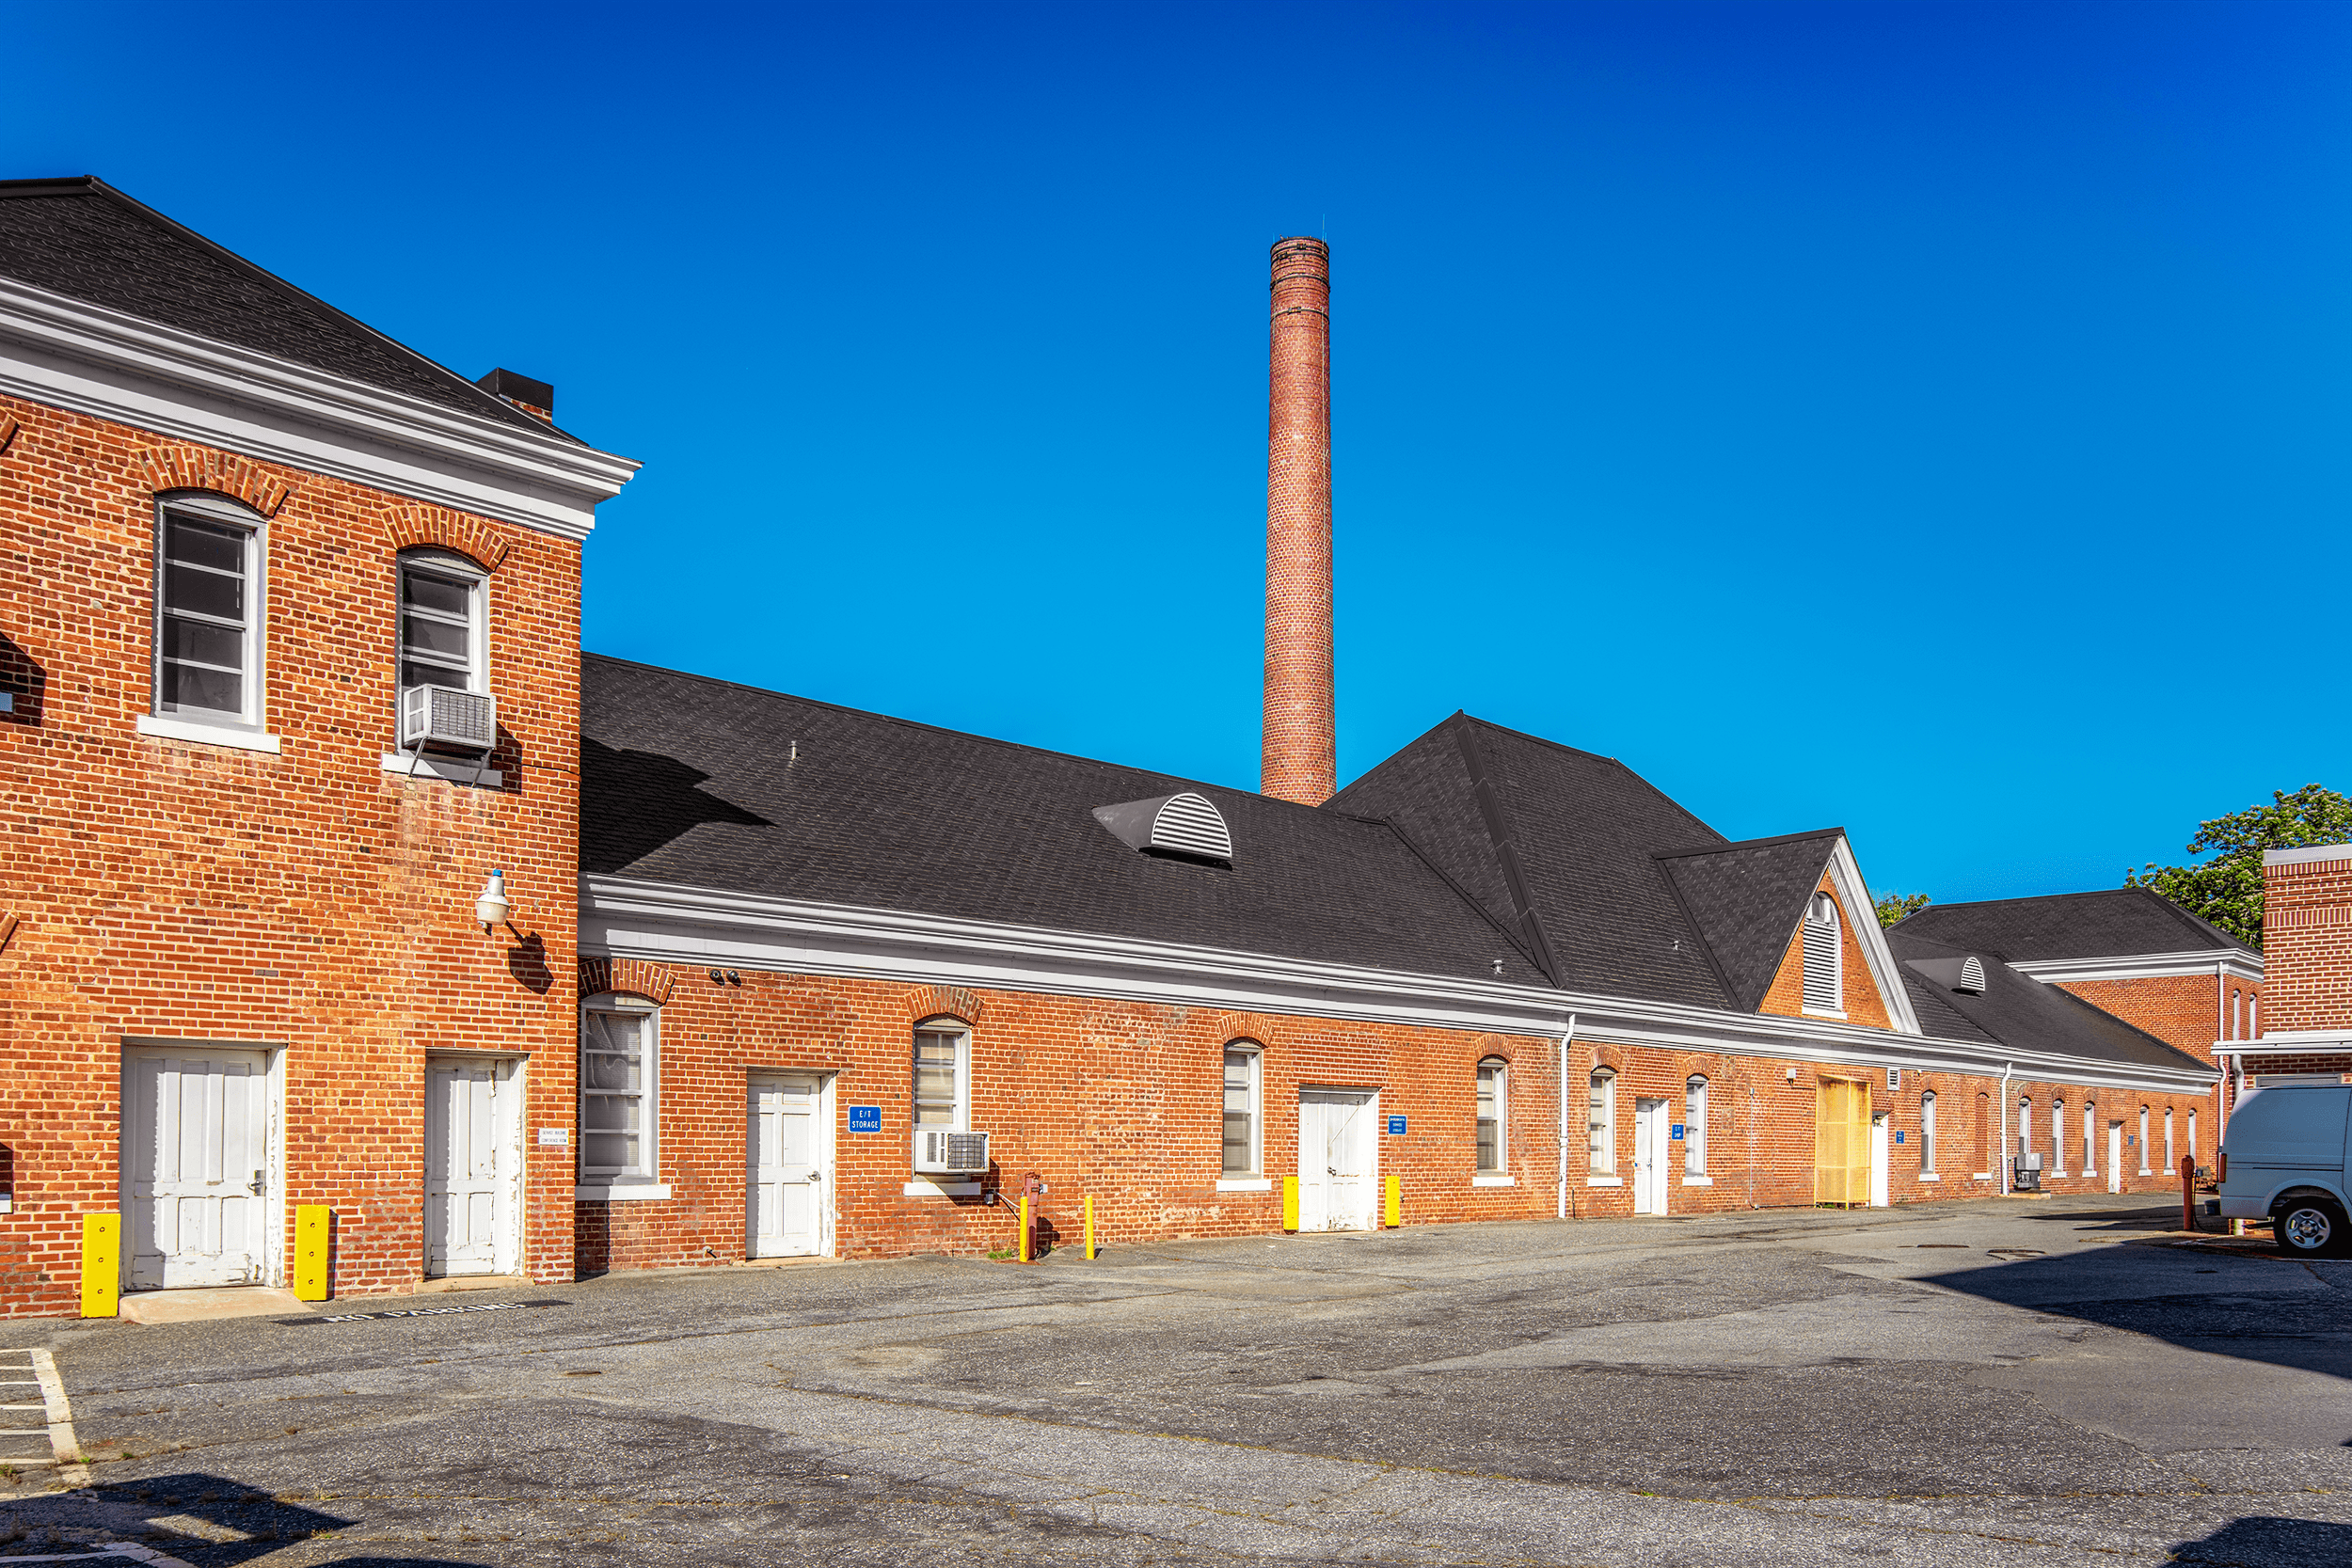 The old  Laundry Building , situated behind the  Main Building , dates from the original construction period of the early to mid-1890s. Both buildings were included in the  National Register of Historic Places  in 1976.